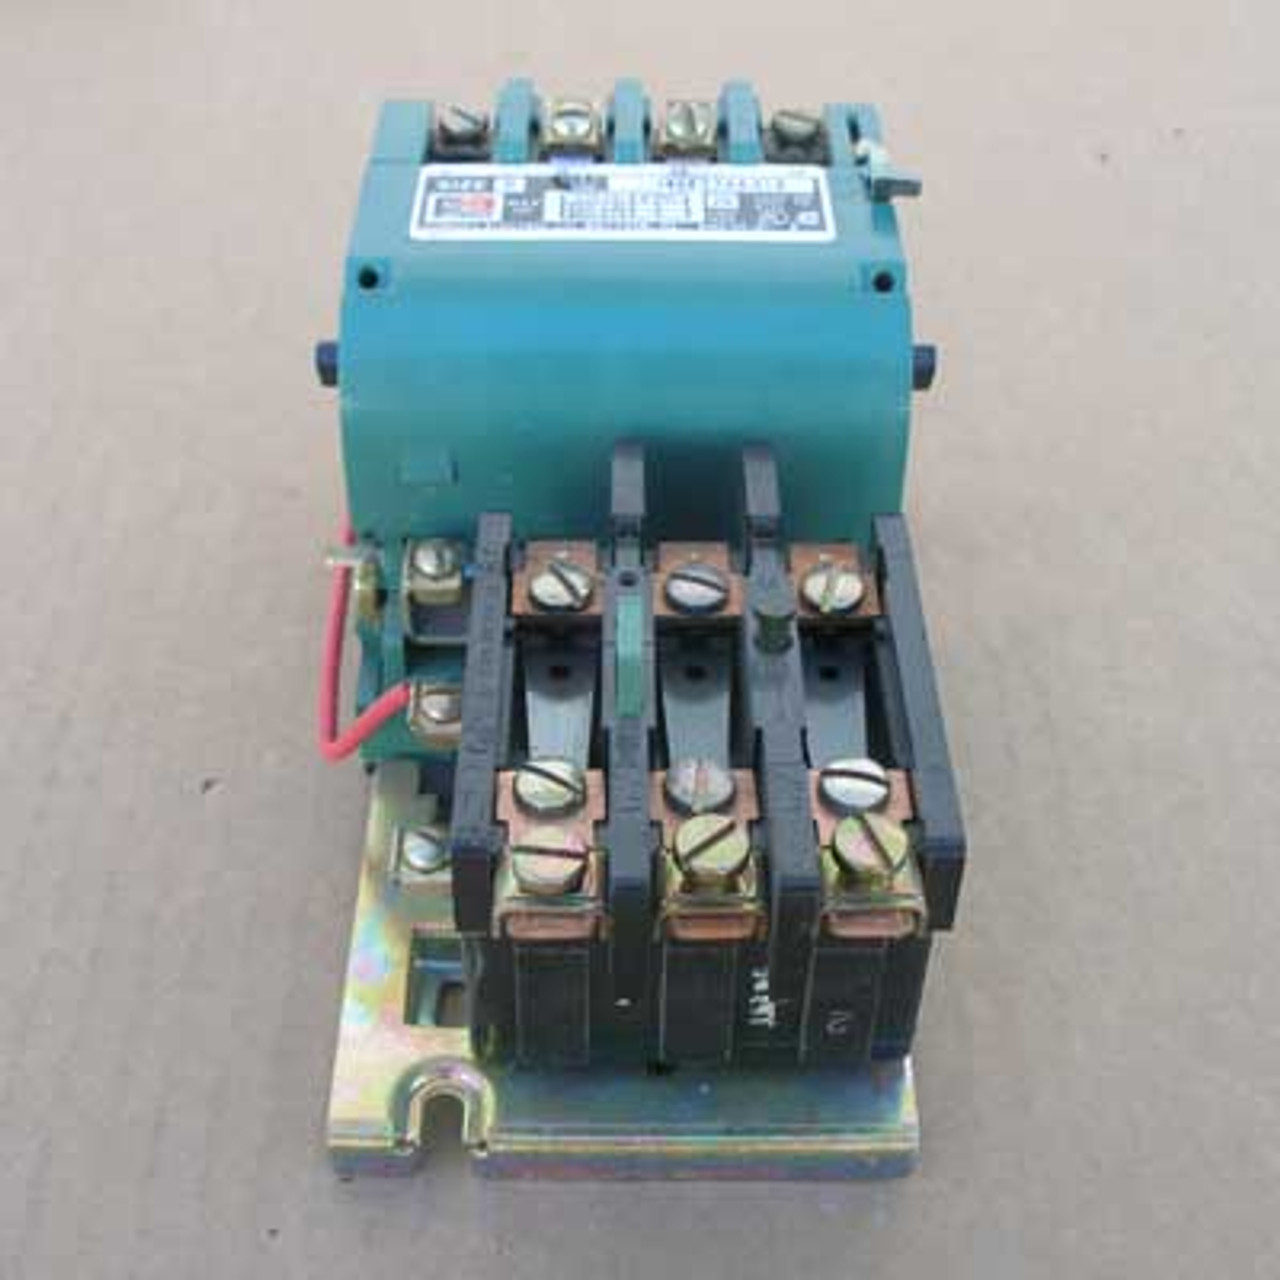 Furnas 14CF32AA81A Size 0 3PH Magnetic Starter 20A 600V - Used